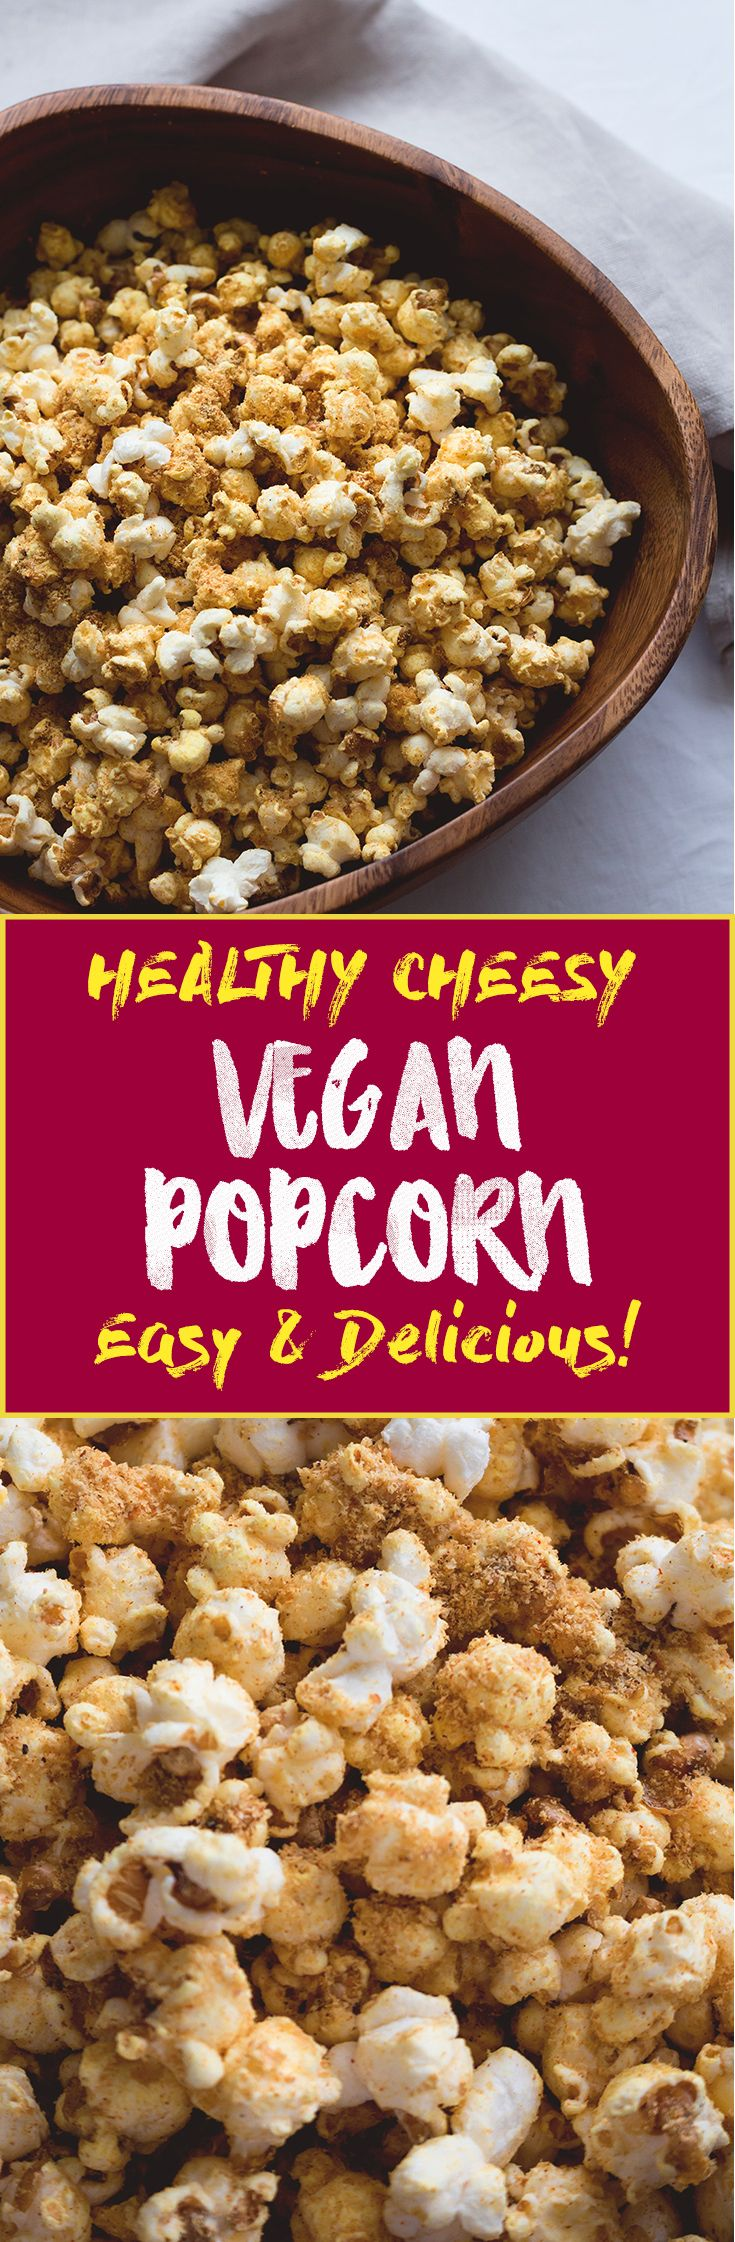 Cheesy Vegan Popcorn - a delicious healthy twist on the classic. Popped the old-fashioned way on the stove with coconut oil and then spiced to perfecting. Ridiculously easy to make! | thehealthfulideas.com